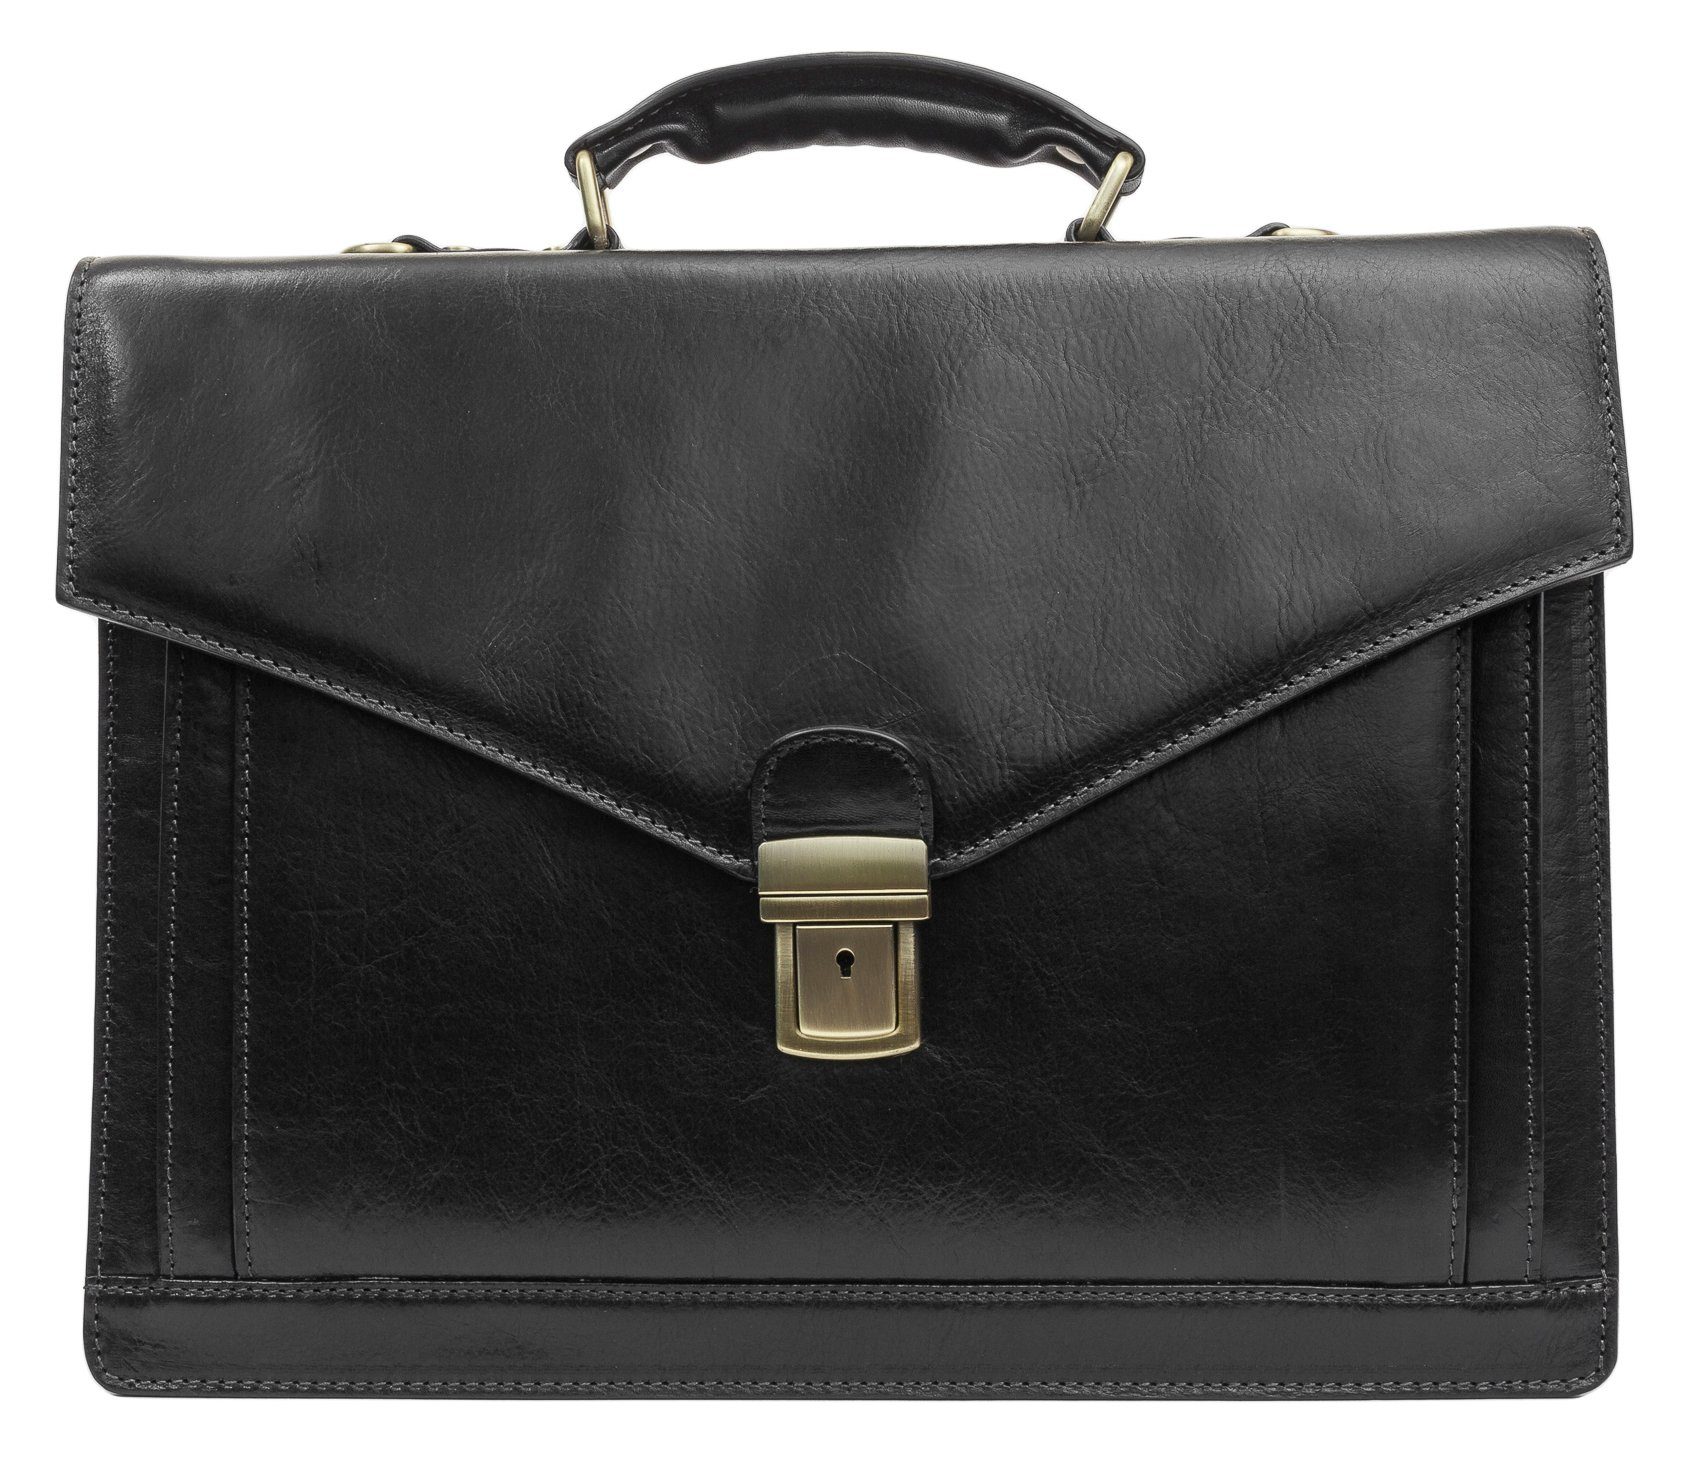 Leather Briefcase Laptop Bag Medium Attache Unisex Black Classic Style - Time Resistance by Time Resistance